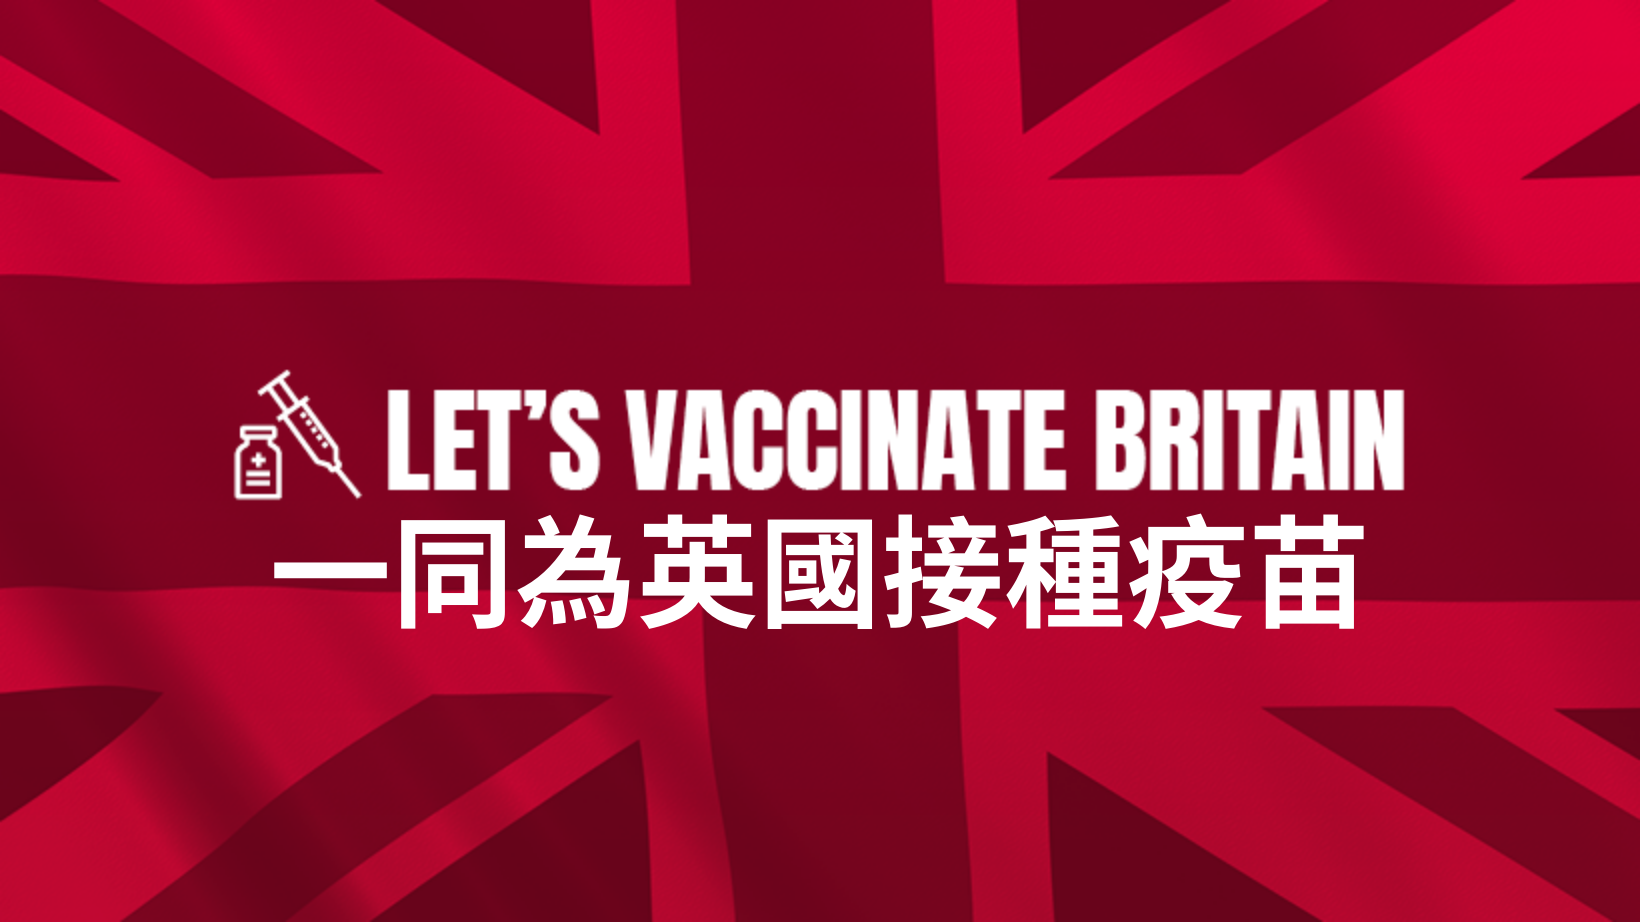 Lets_vacinnate_Britain_04__Traditional_Chinese_.png